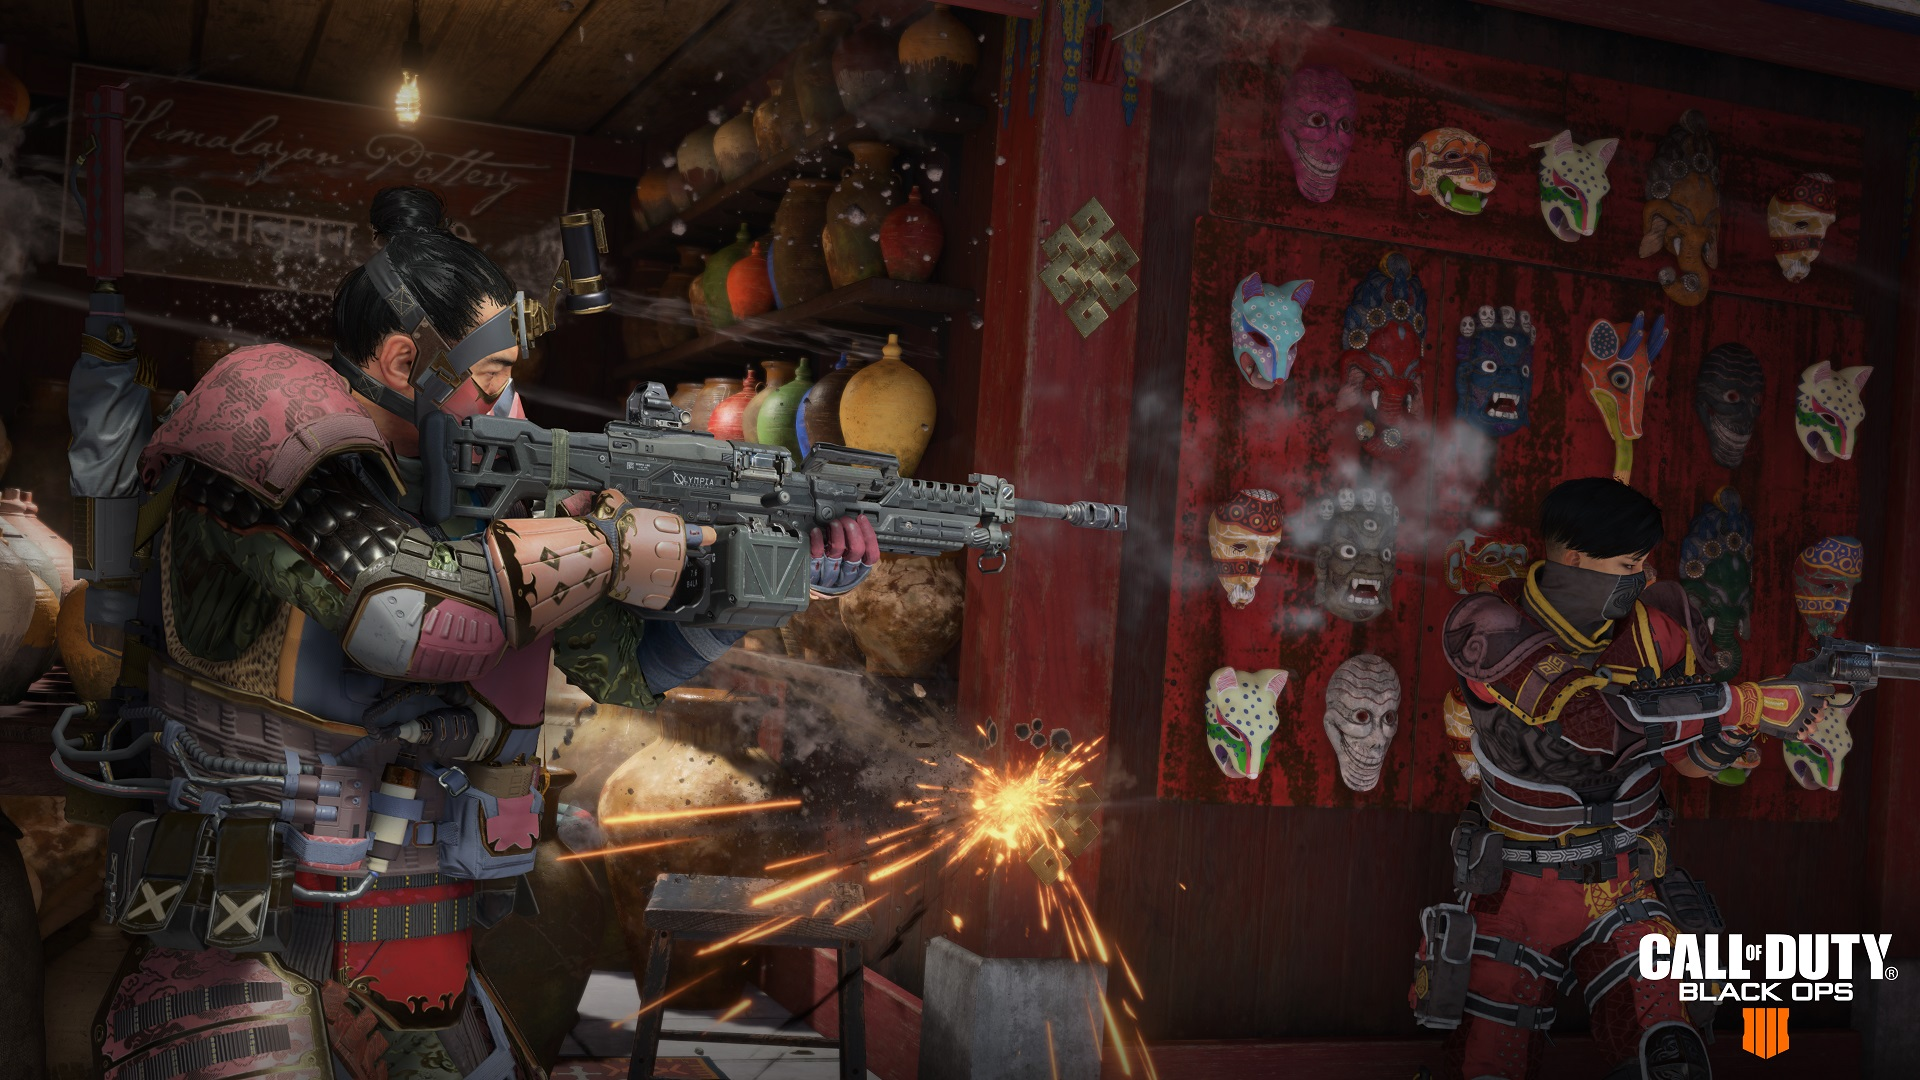 Call of Duty Black Ops 4: How the Black Market System Can